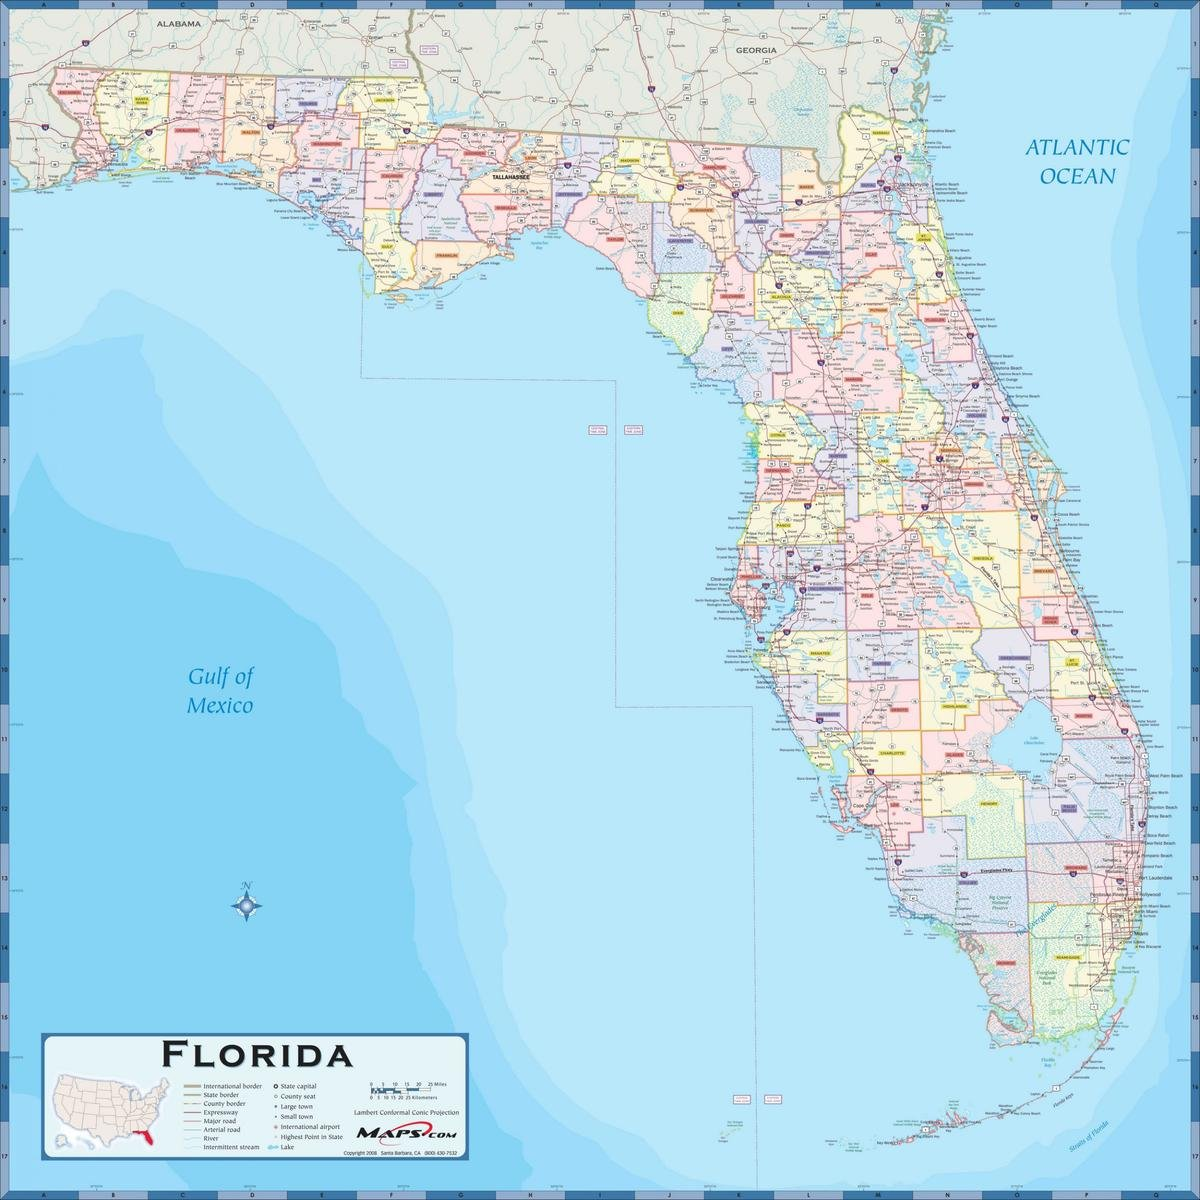 Florida County Map With Roads.Amazon Com Gifts Delight Laminated 24x24 Poster Physical Map